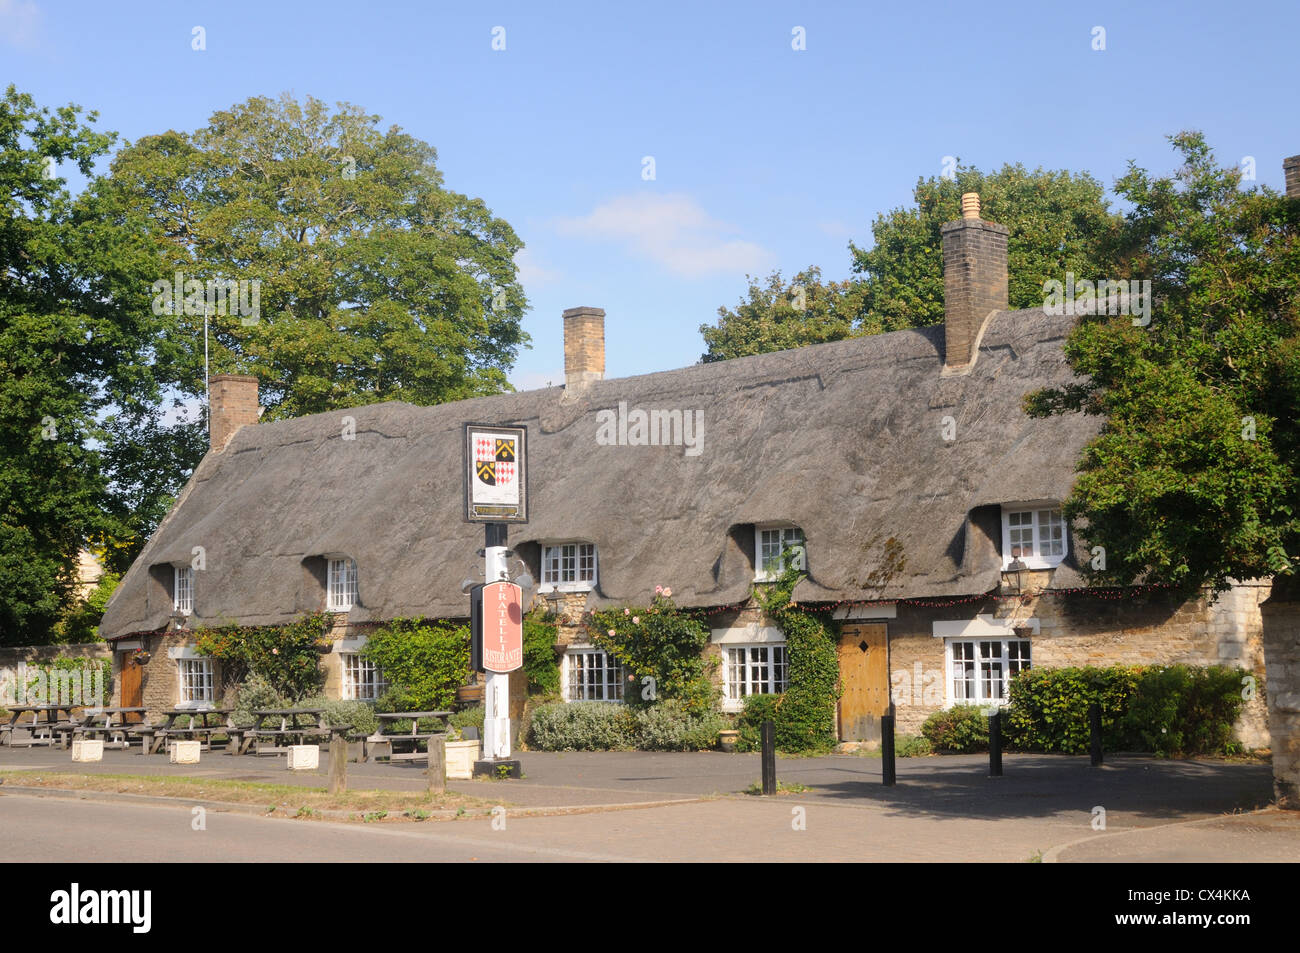 The Fitzwilliam Arms, in Castor, Northamptonshire, England - Stock Image